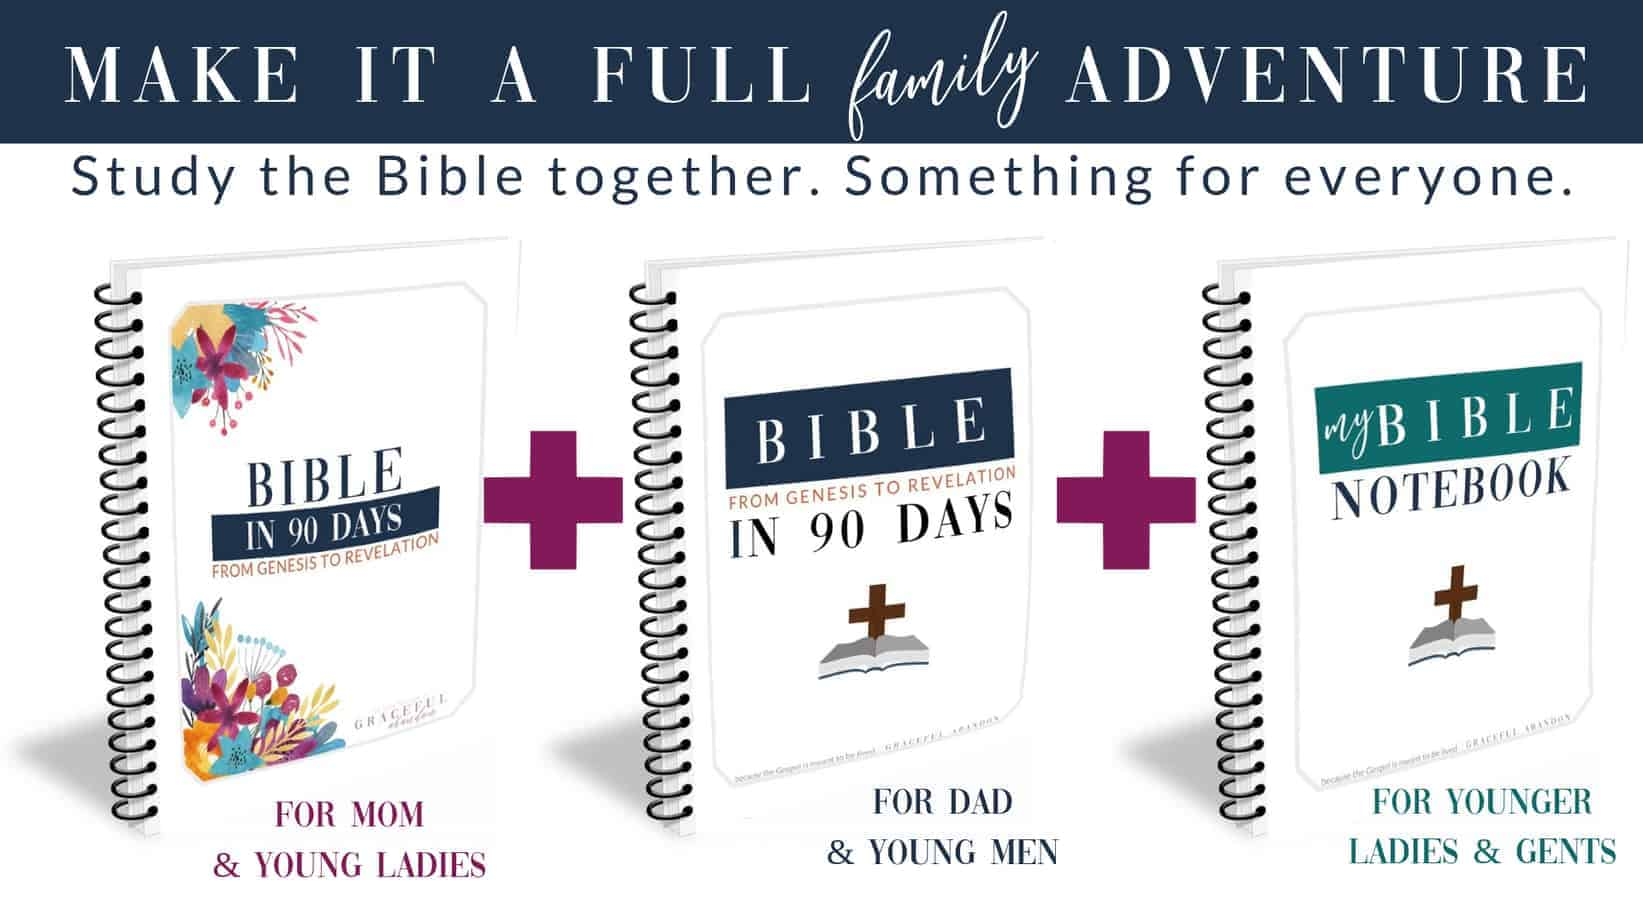 6 Tips to Read the Entire Bible Cover to Cover in Just 90 Days